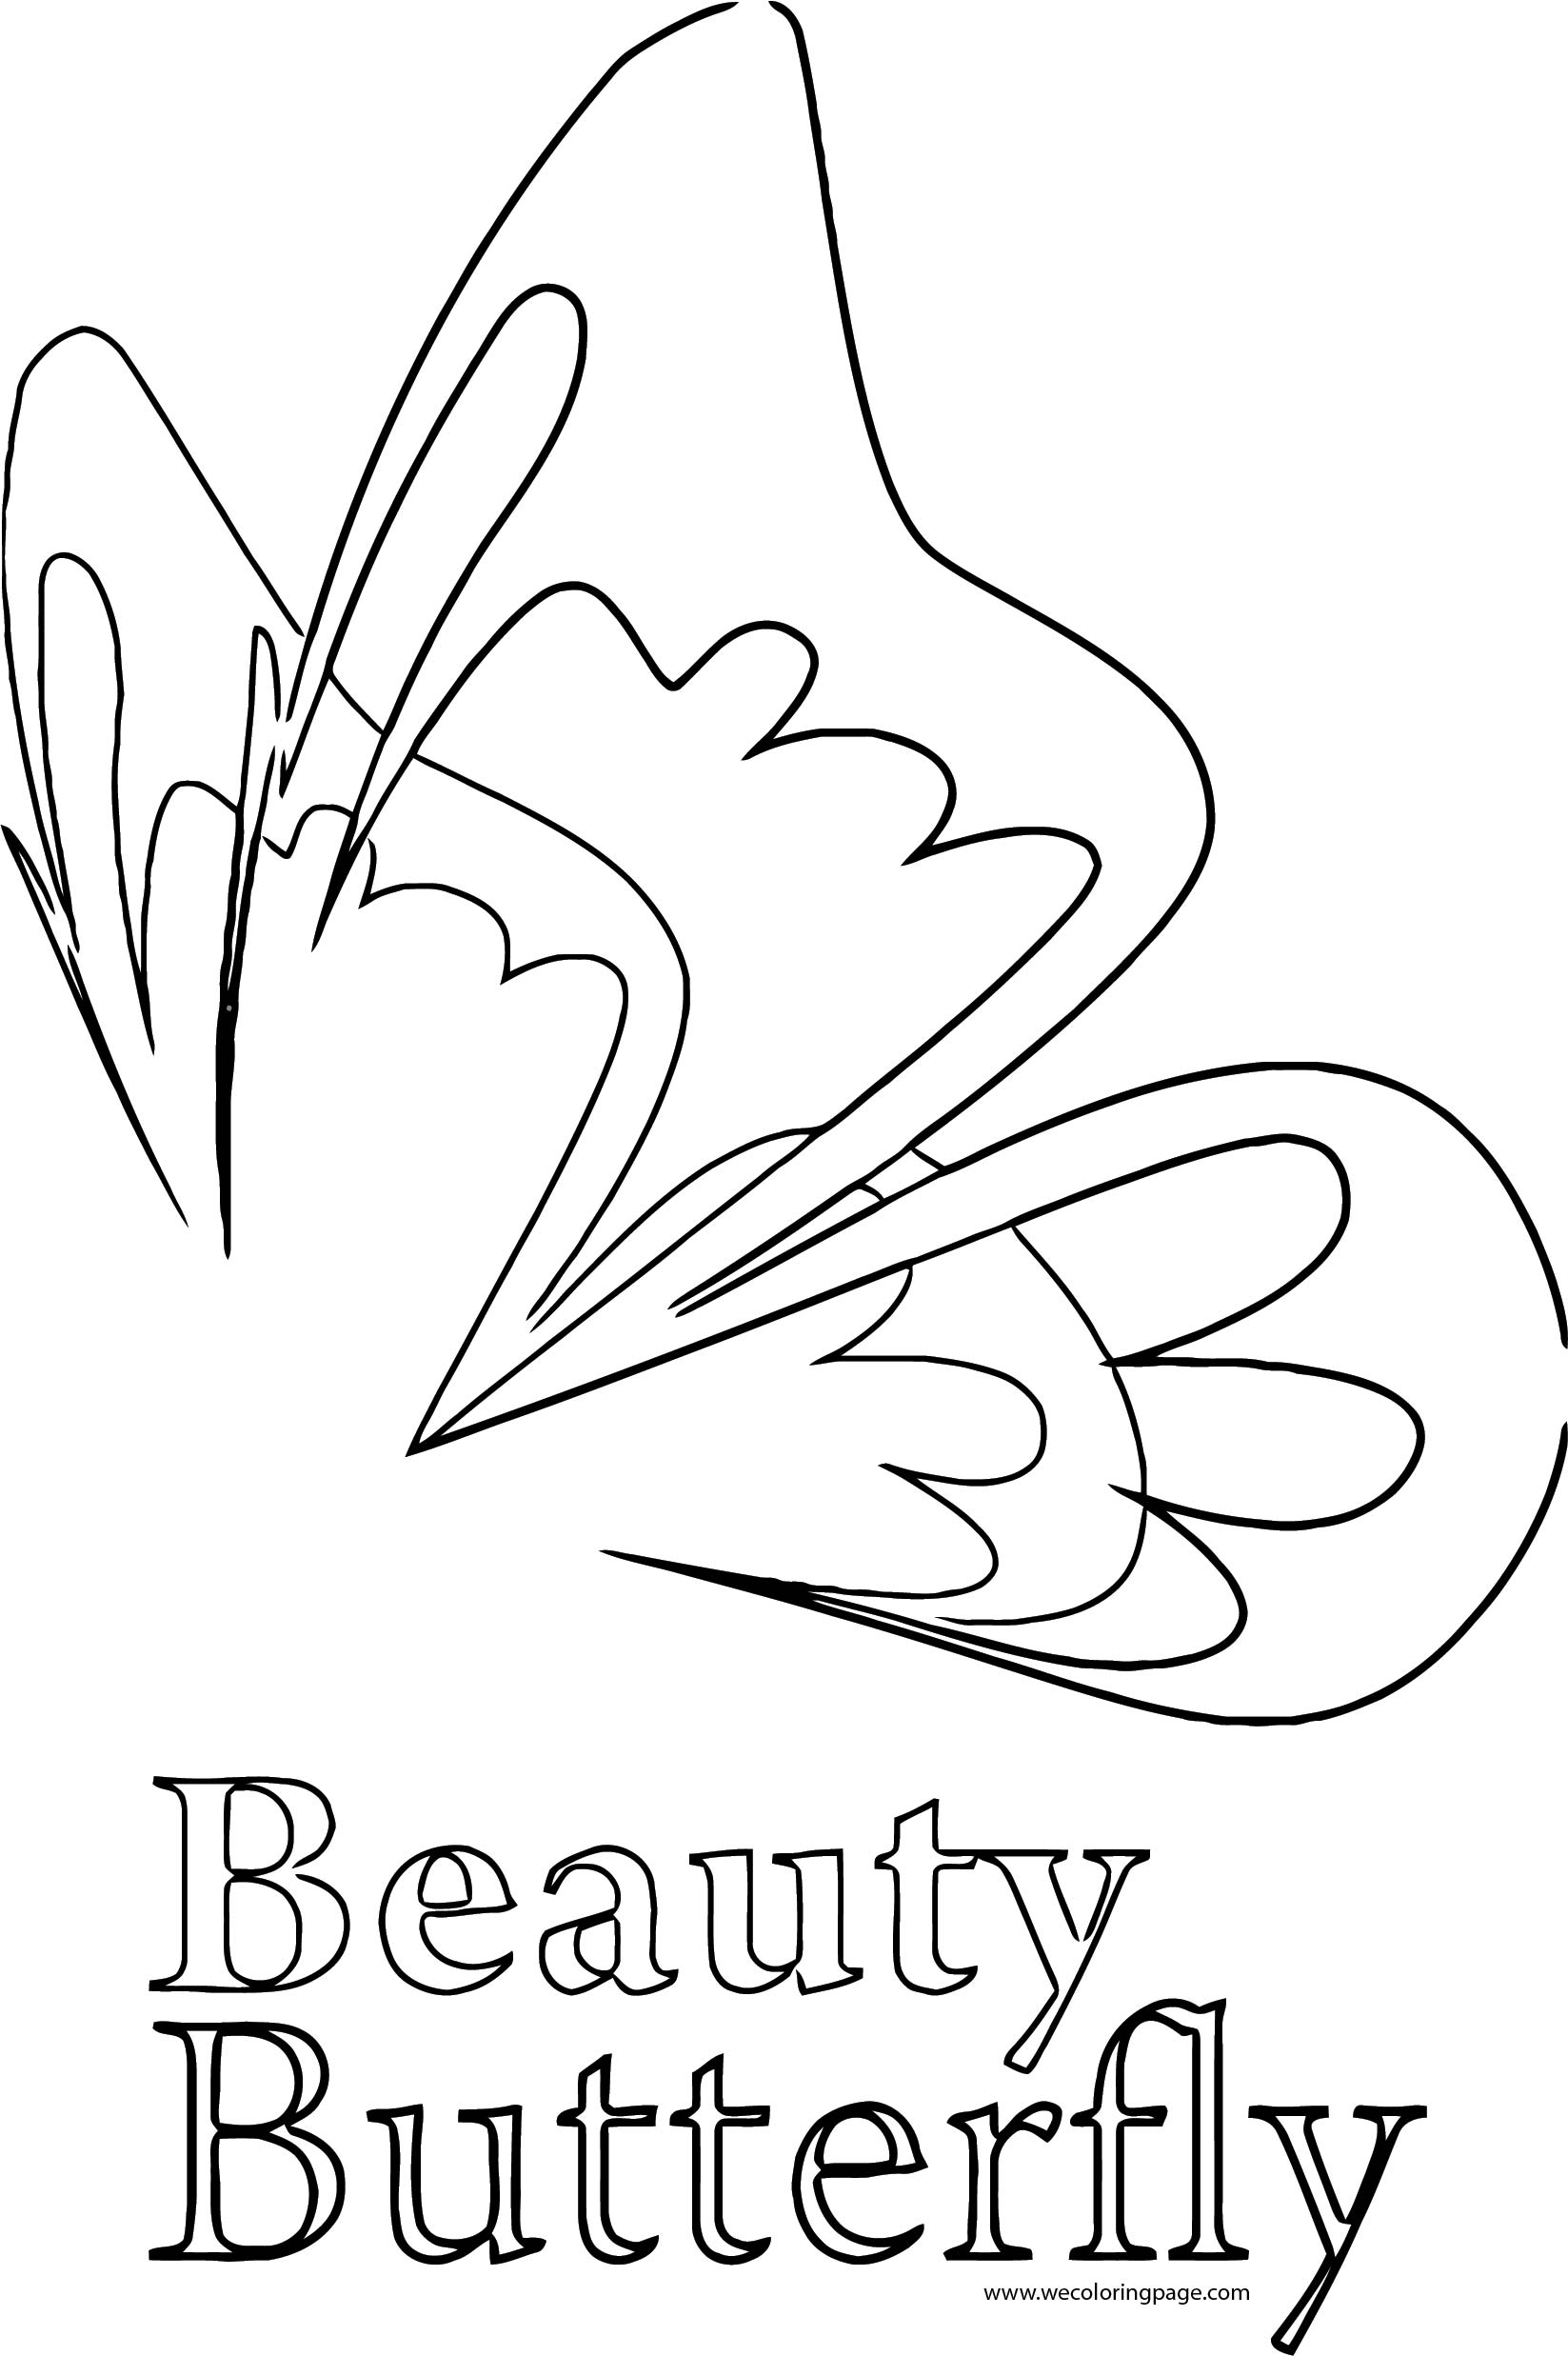 Beauty Butterfly Coloring Page